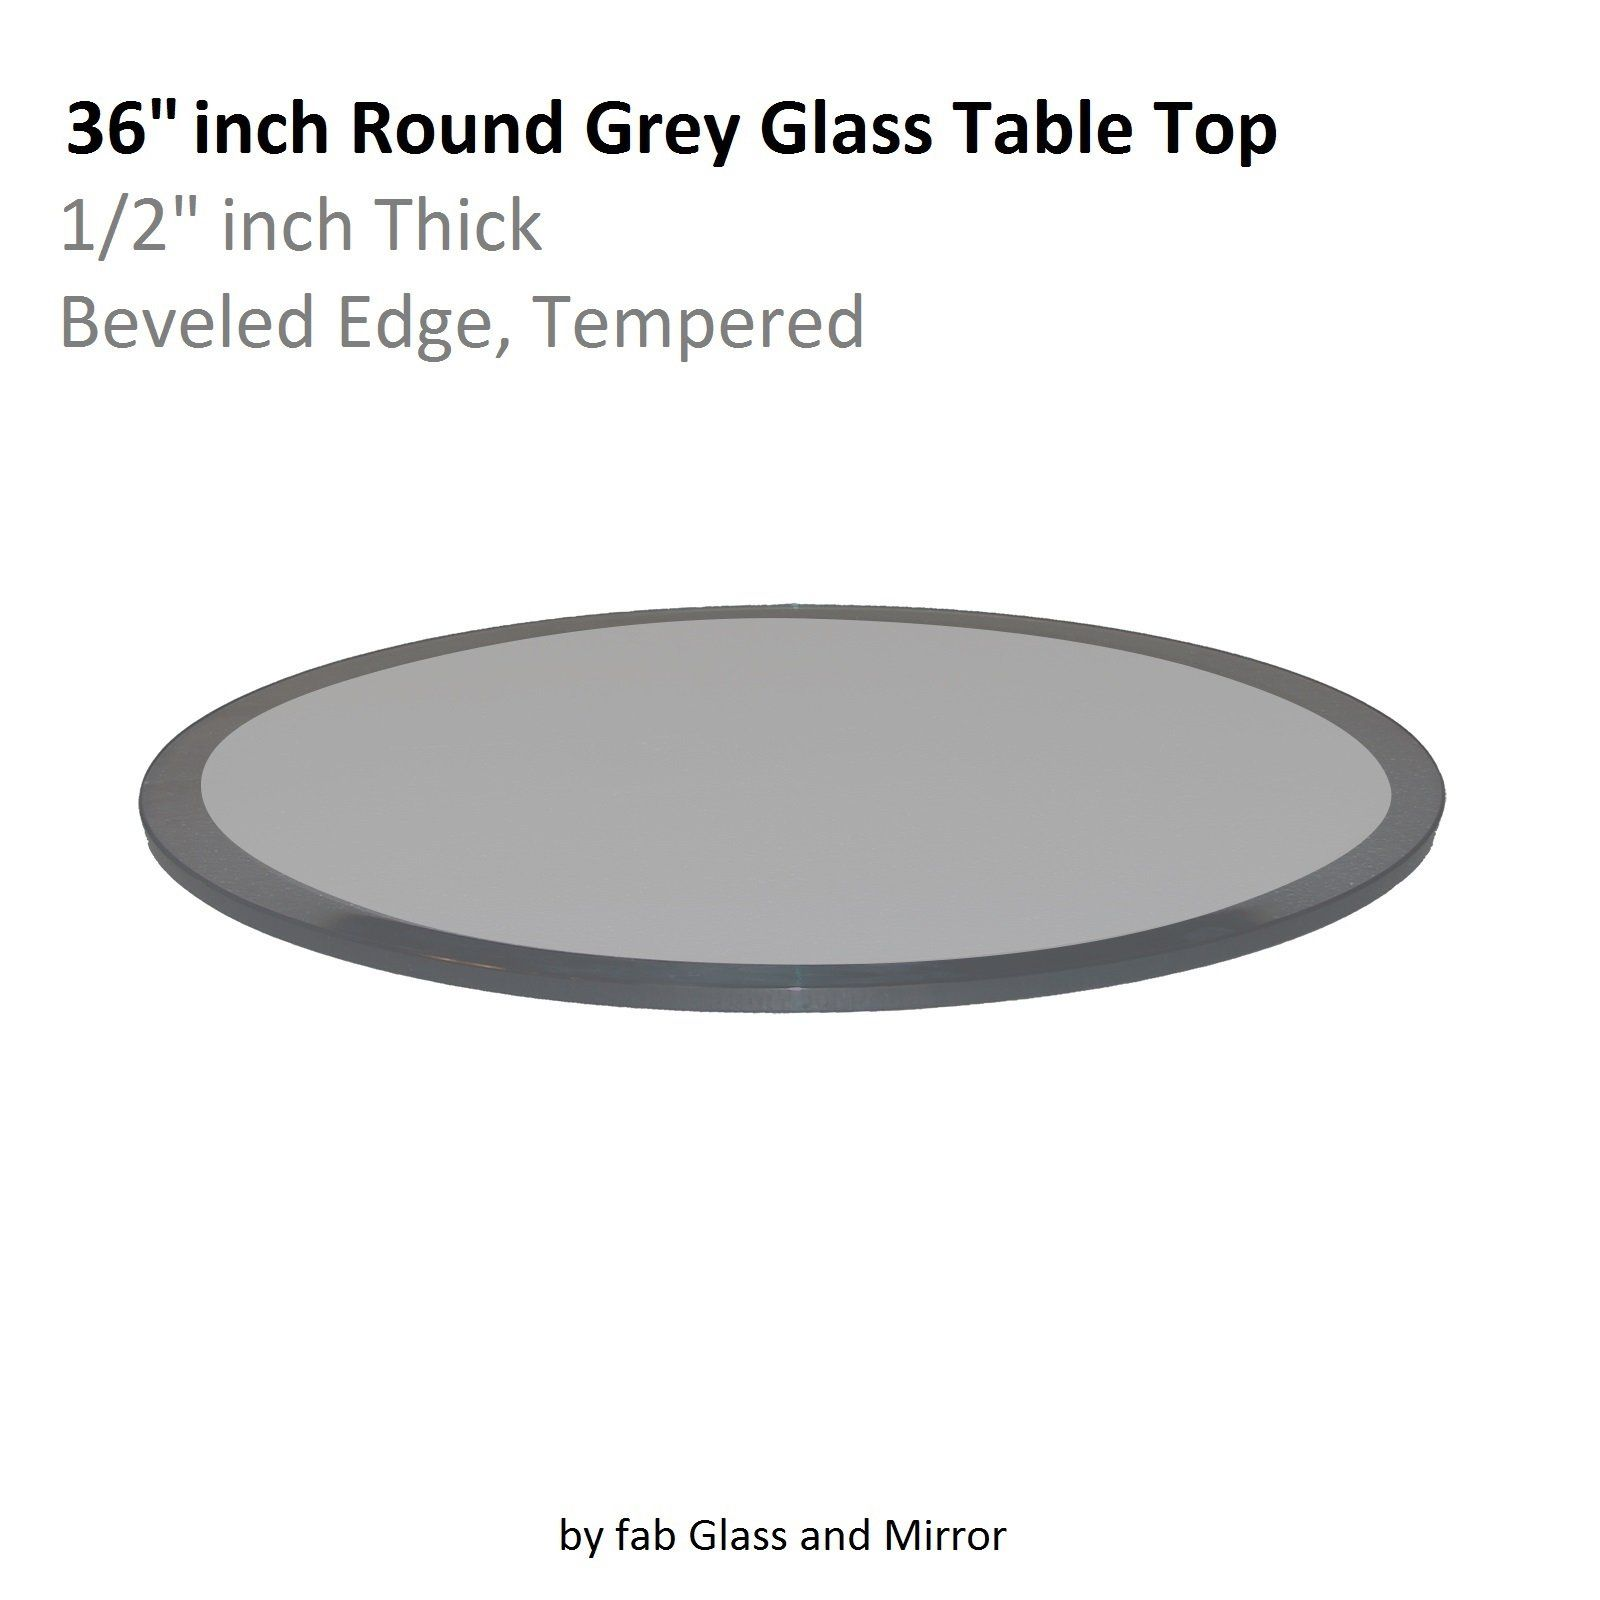 Fab Glass And Mirror Glass Table Top 36 Round 1 2 Thick Beveled Tempered Grey Click Image To Review More D Glass Top Table Glass Table Round Glass Table Top 36 round glass table top